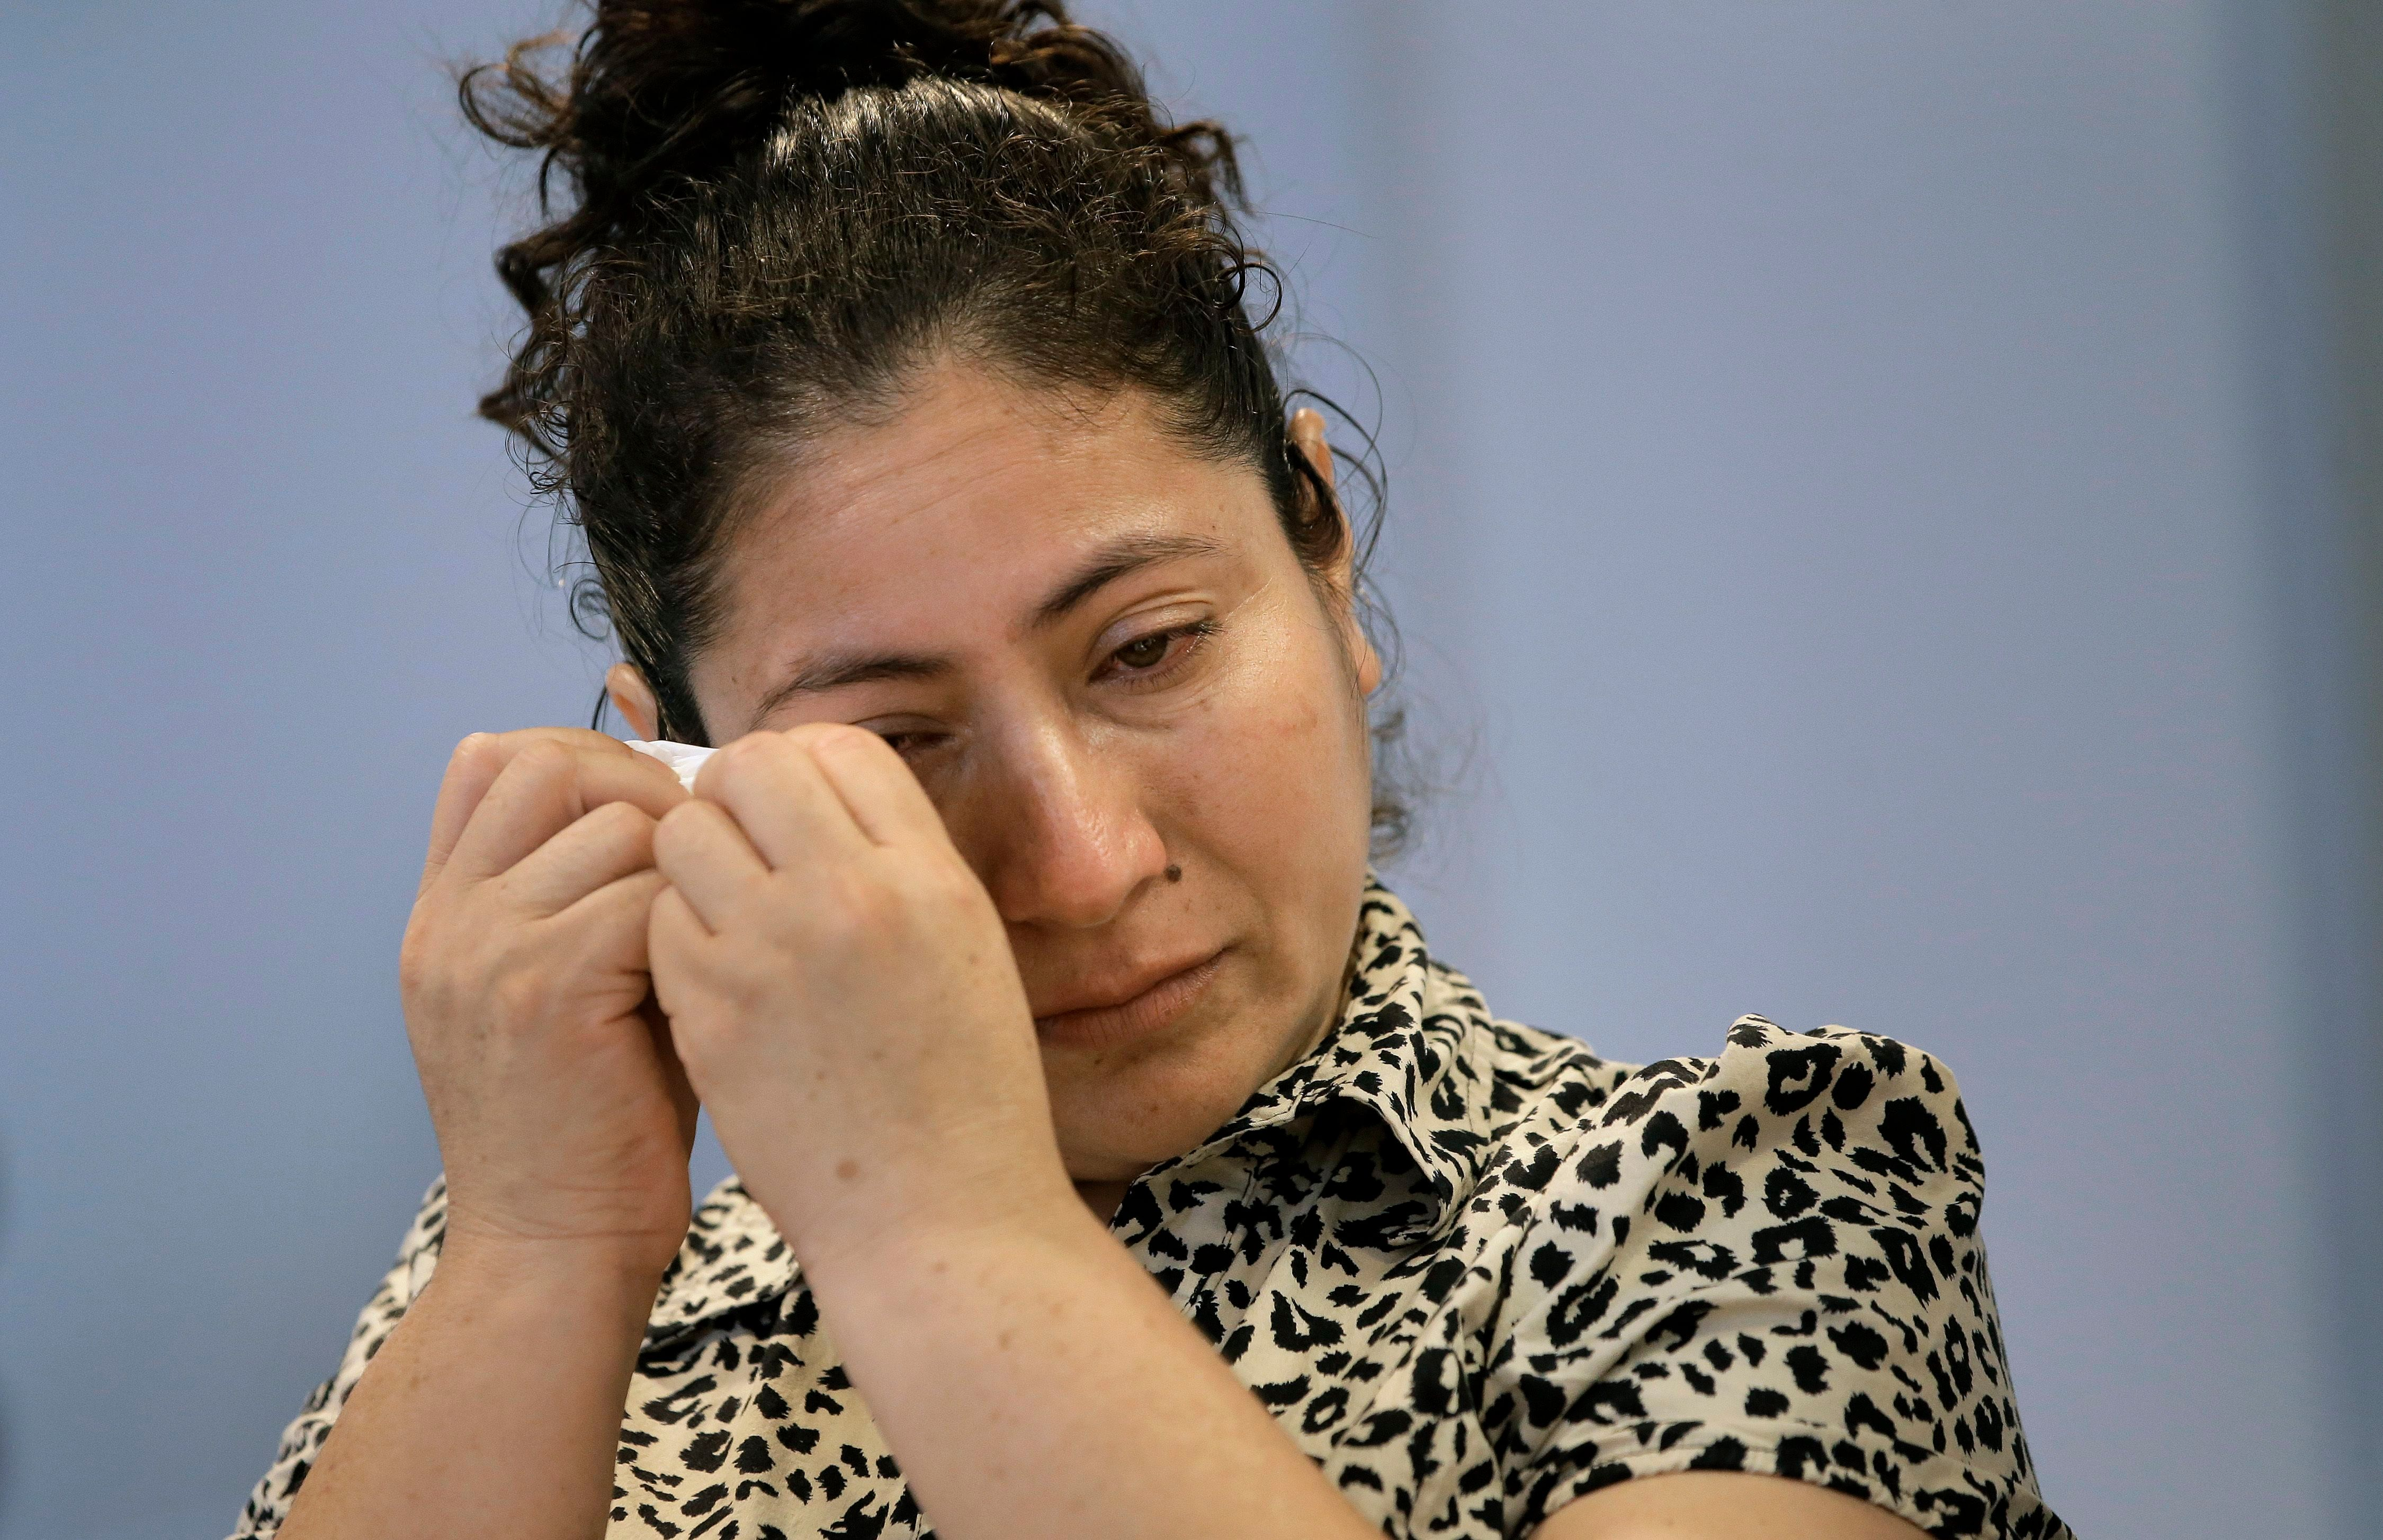 A mother from Guatemala, identified only by initials L.J., who was separated from her two children after entering the U.S. in May of 2018, is tearful while speaking to reporters about the separation during a news conference in Boston on Sept. 6, 2018.